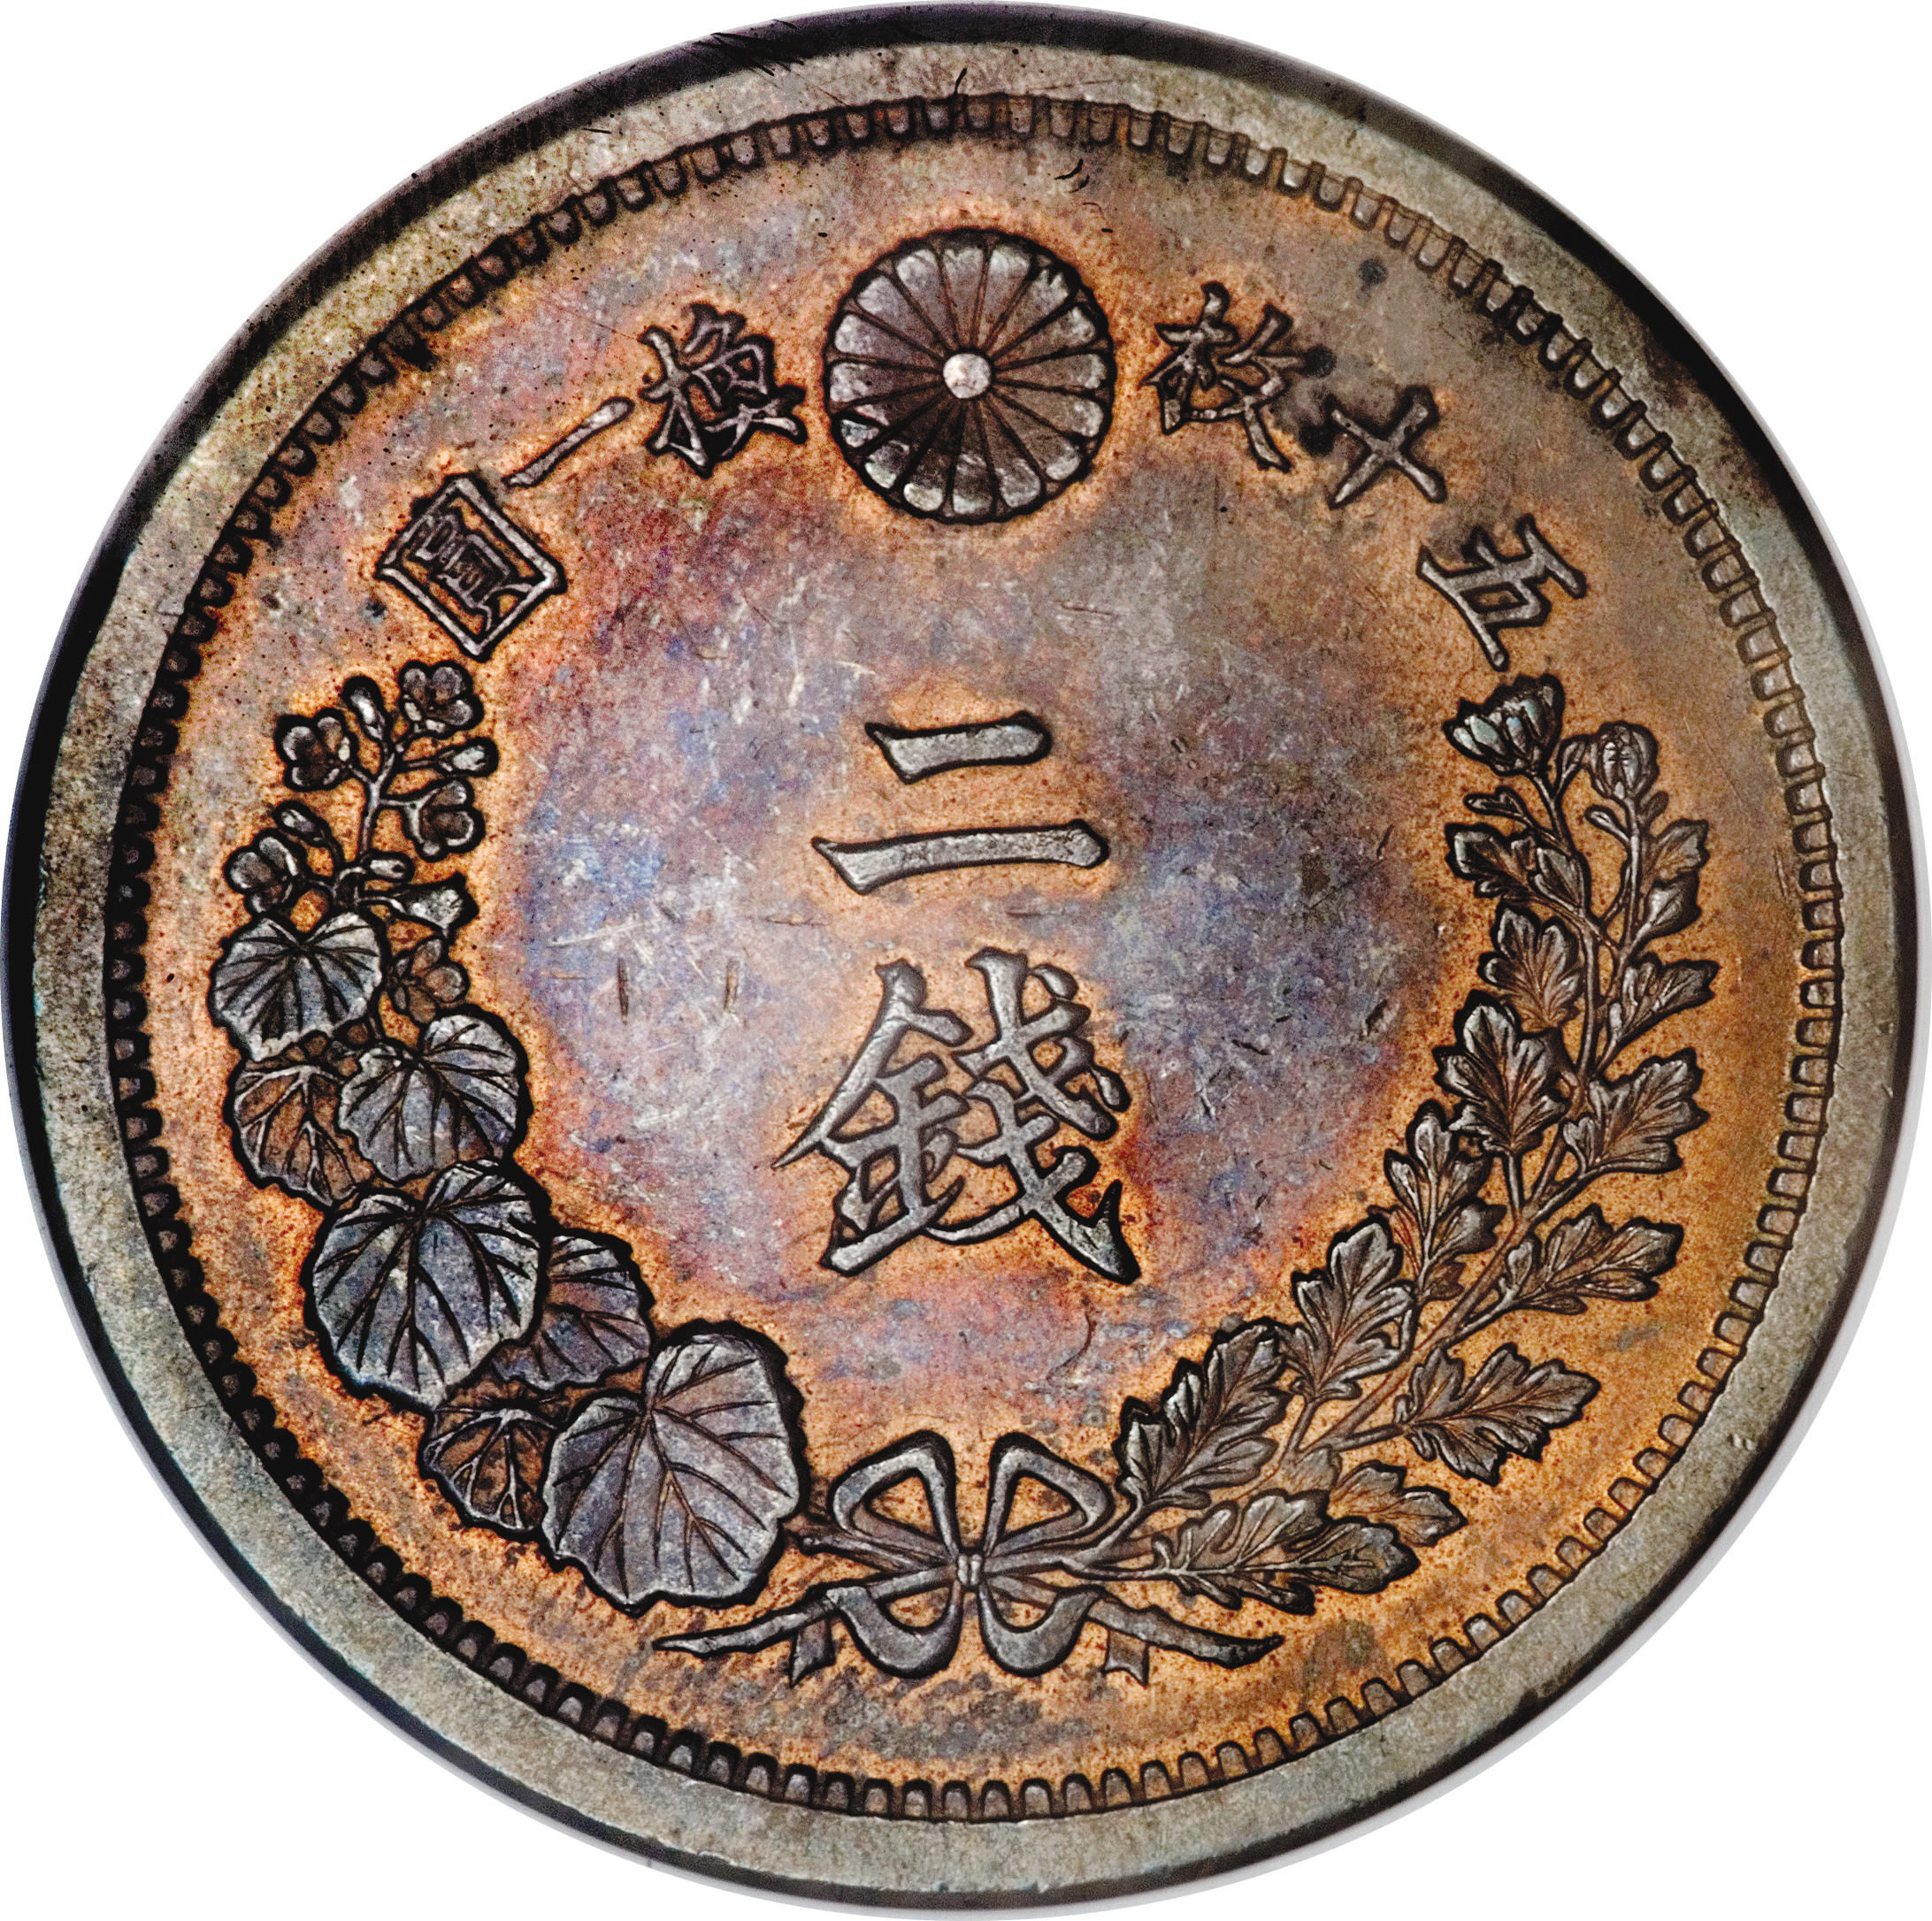 how to read date on japanese coin